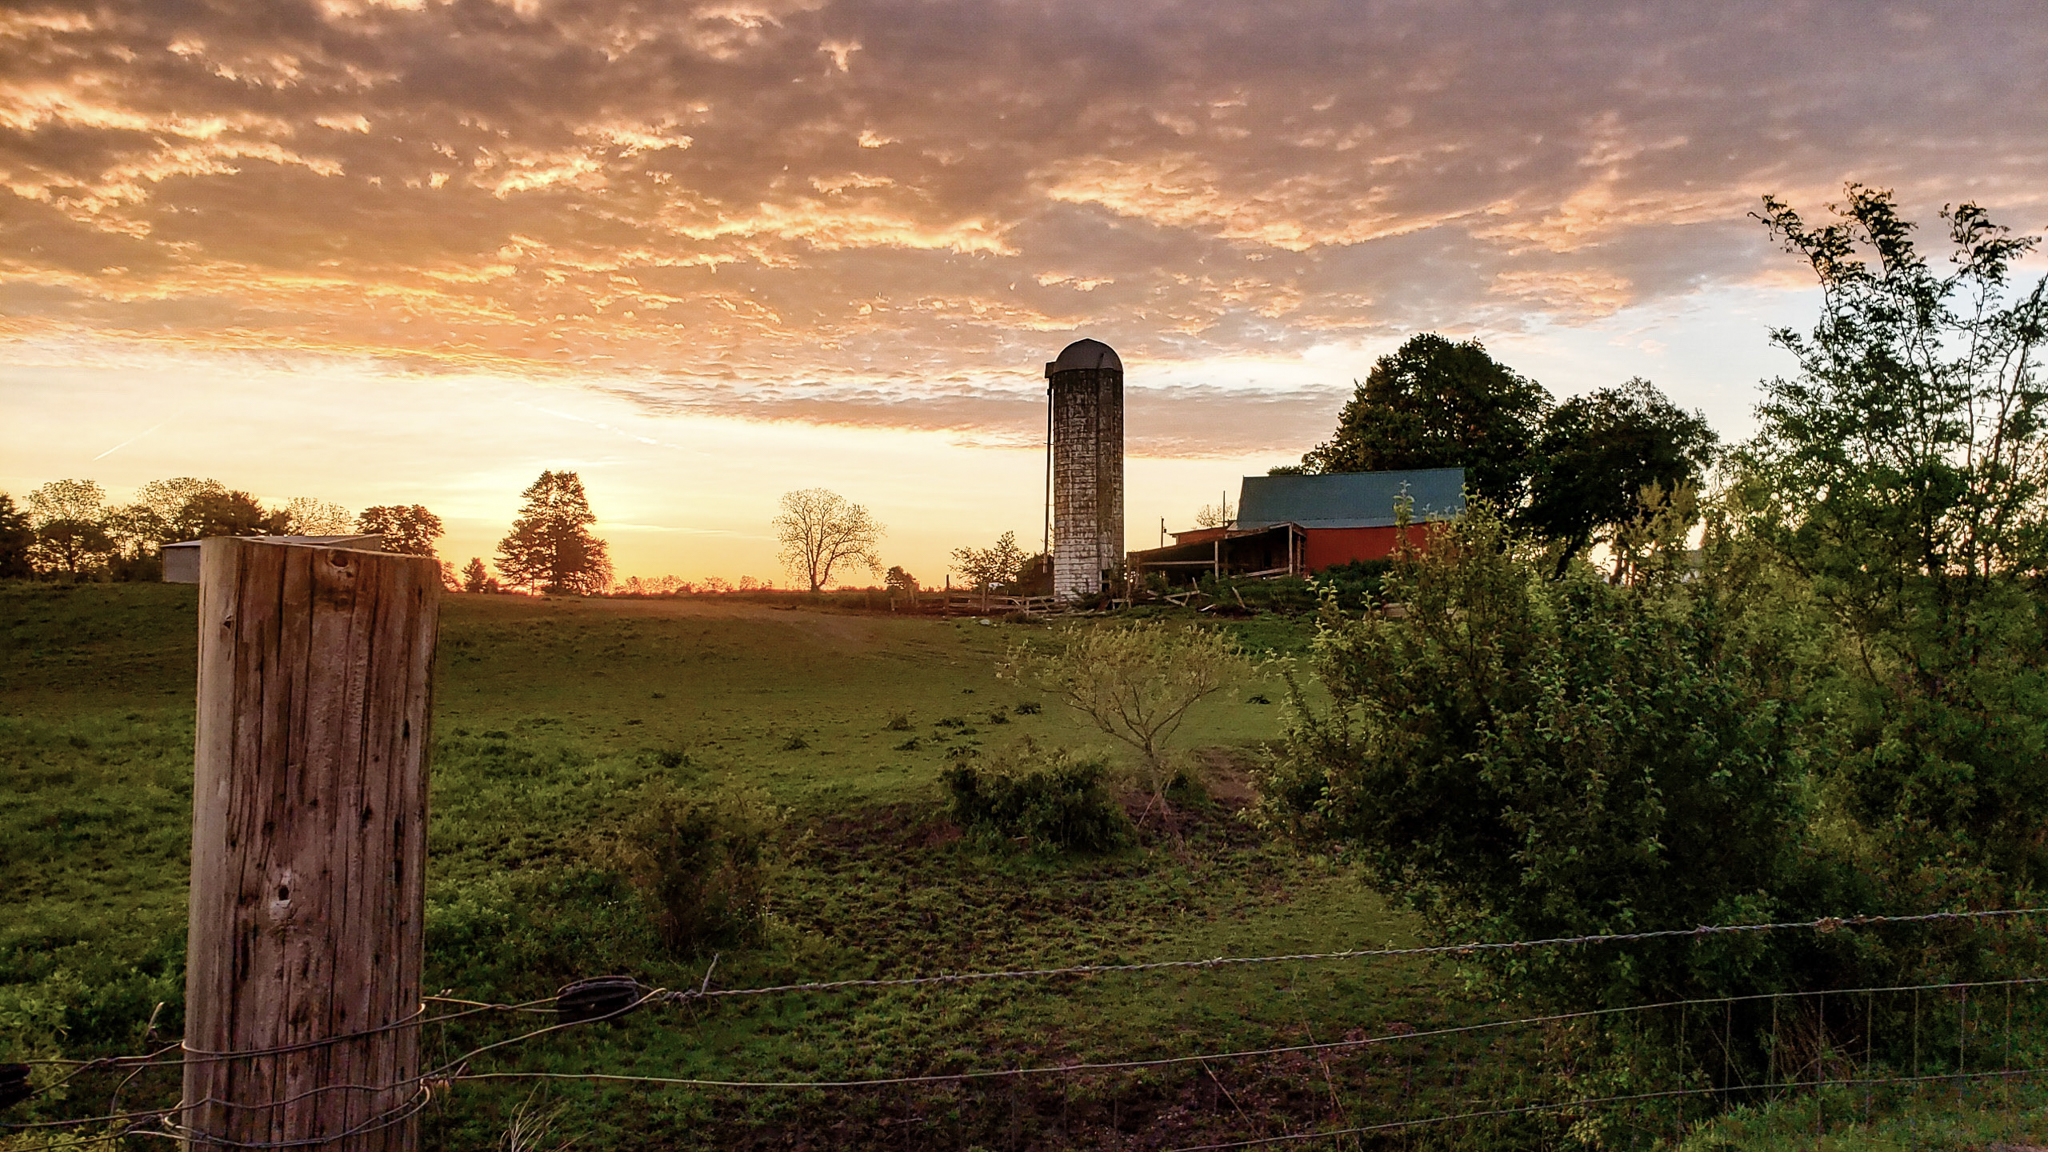 21-May-2019 Spring Sunrise on the farm